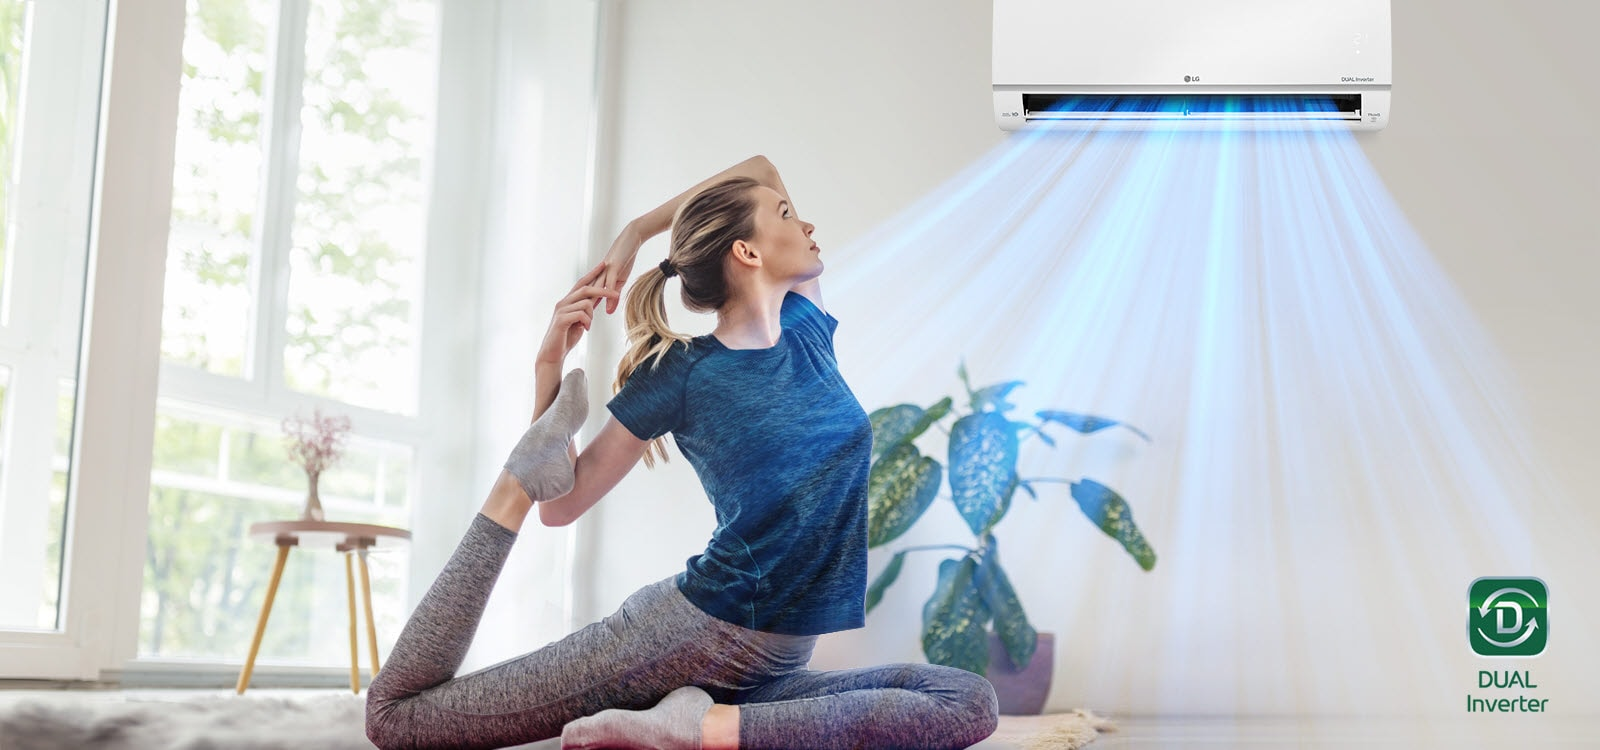 A woman is stretching on the floor. In the background is the air conditioner and blue air flows out over the woman and the room. The Dual Inverter logo is in the bottom right corner.